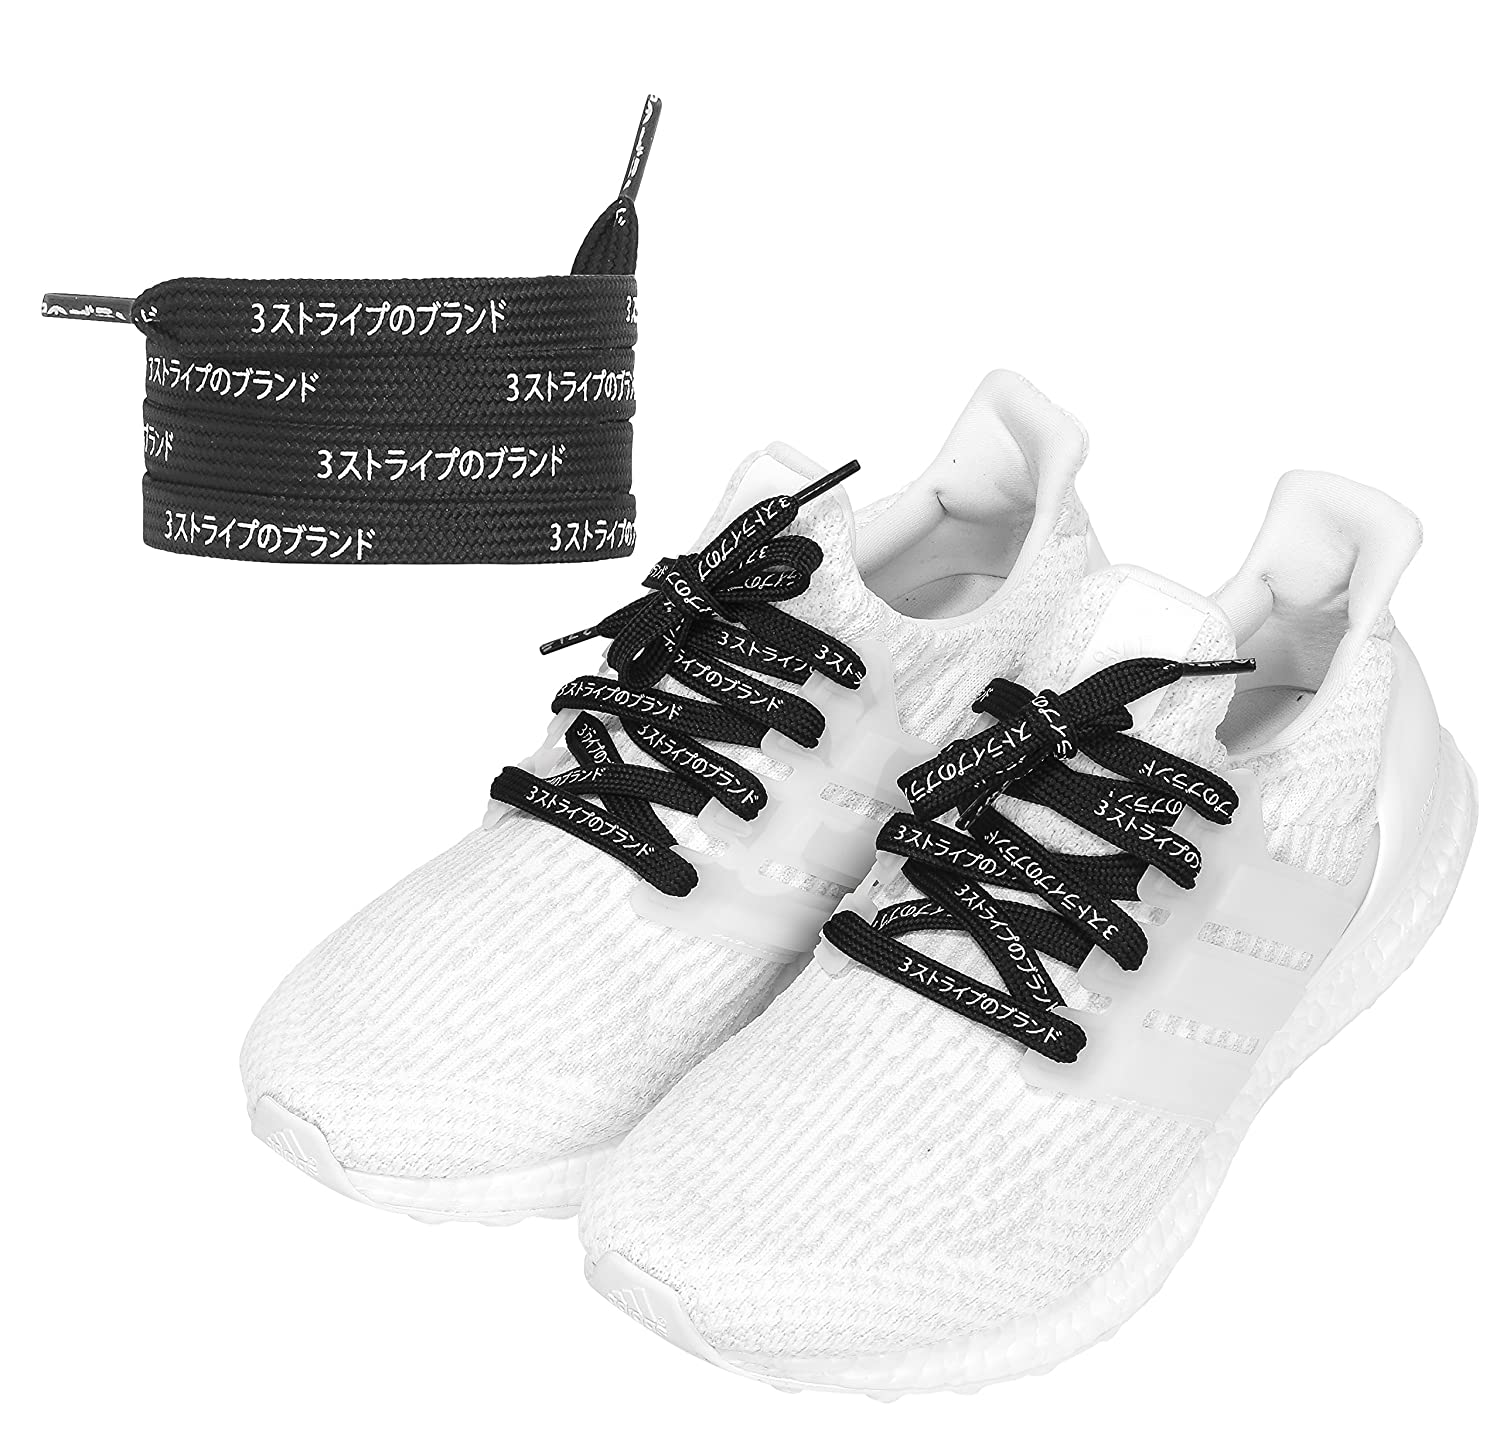 5138505aa Amazon.com: Japanese Katakana 3 Stripes Laces - Shoelaces for Adidas NMD /  Ultraboost / Yeezy (Black) - 1 Pair (2 Shoelaces): Shoes